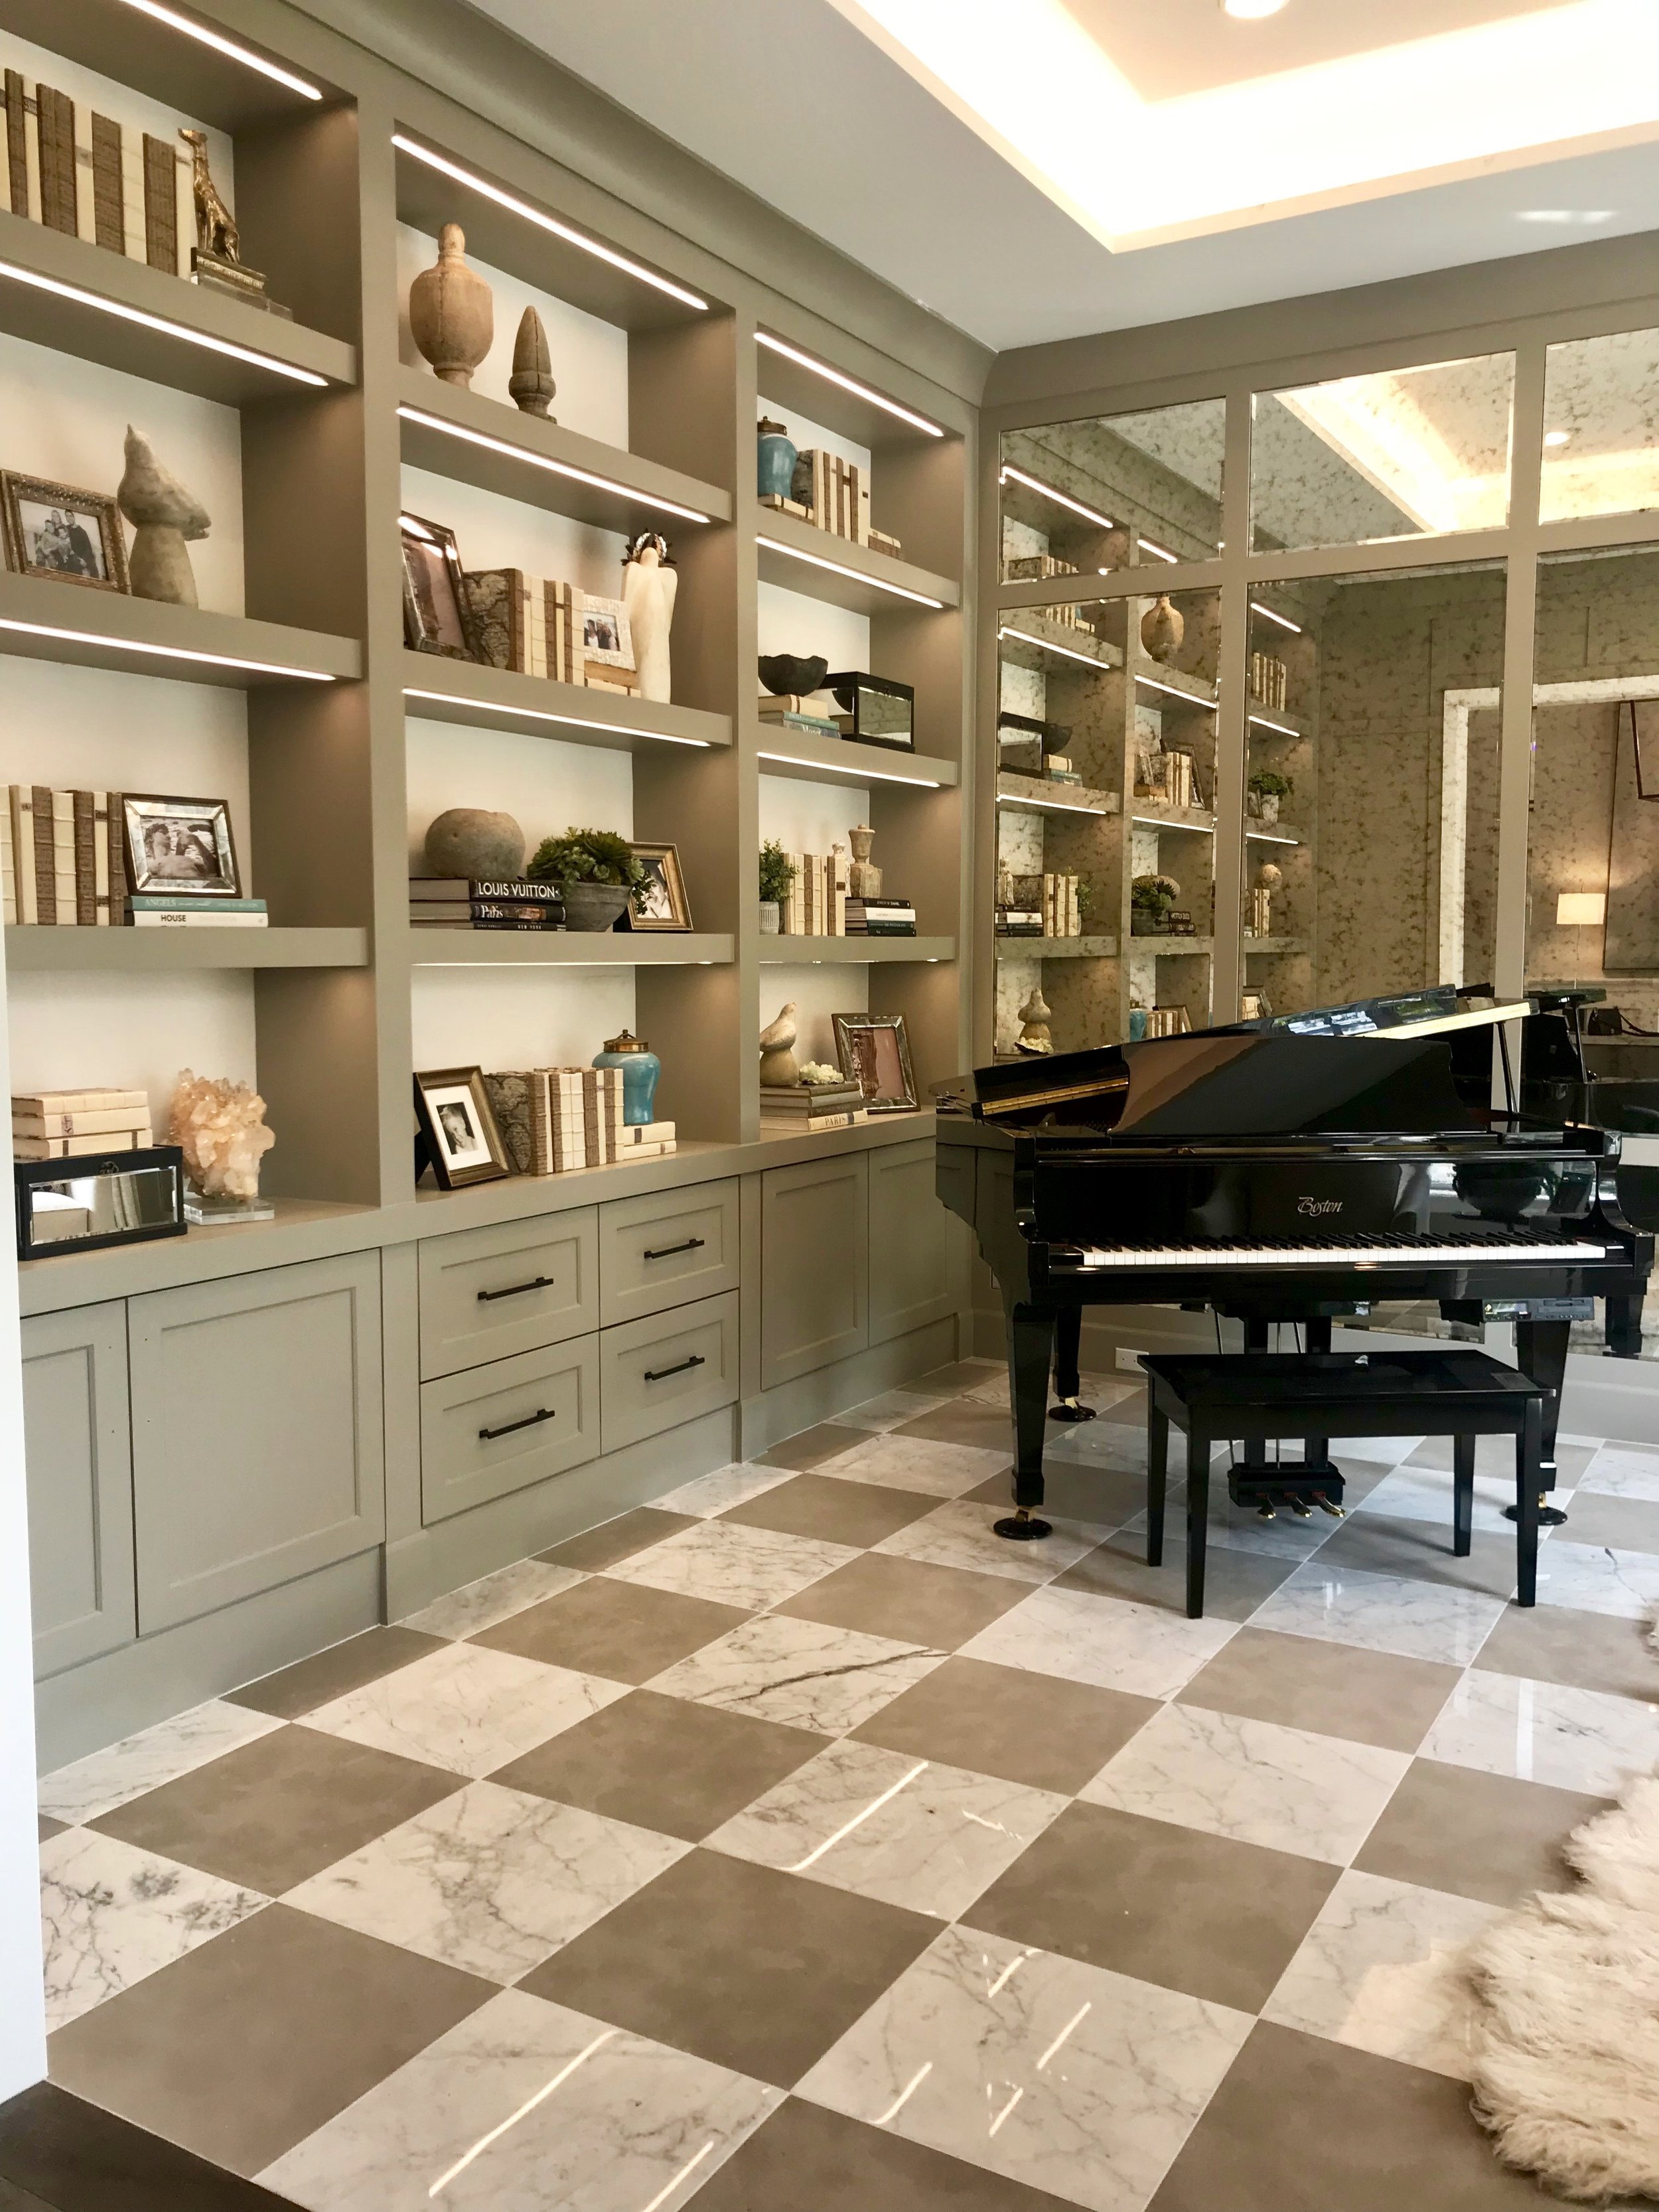 Warm gray wood paneling surrounds the library with beveled antique mirror insets at the focal wall, reflecting elegance at all angles, and a glossy black Boston baby grand piano welcomes guests from the adjacent entry.